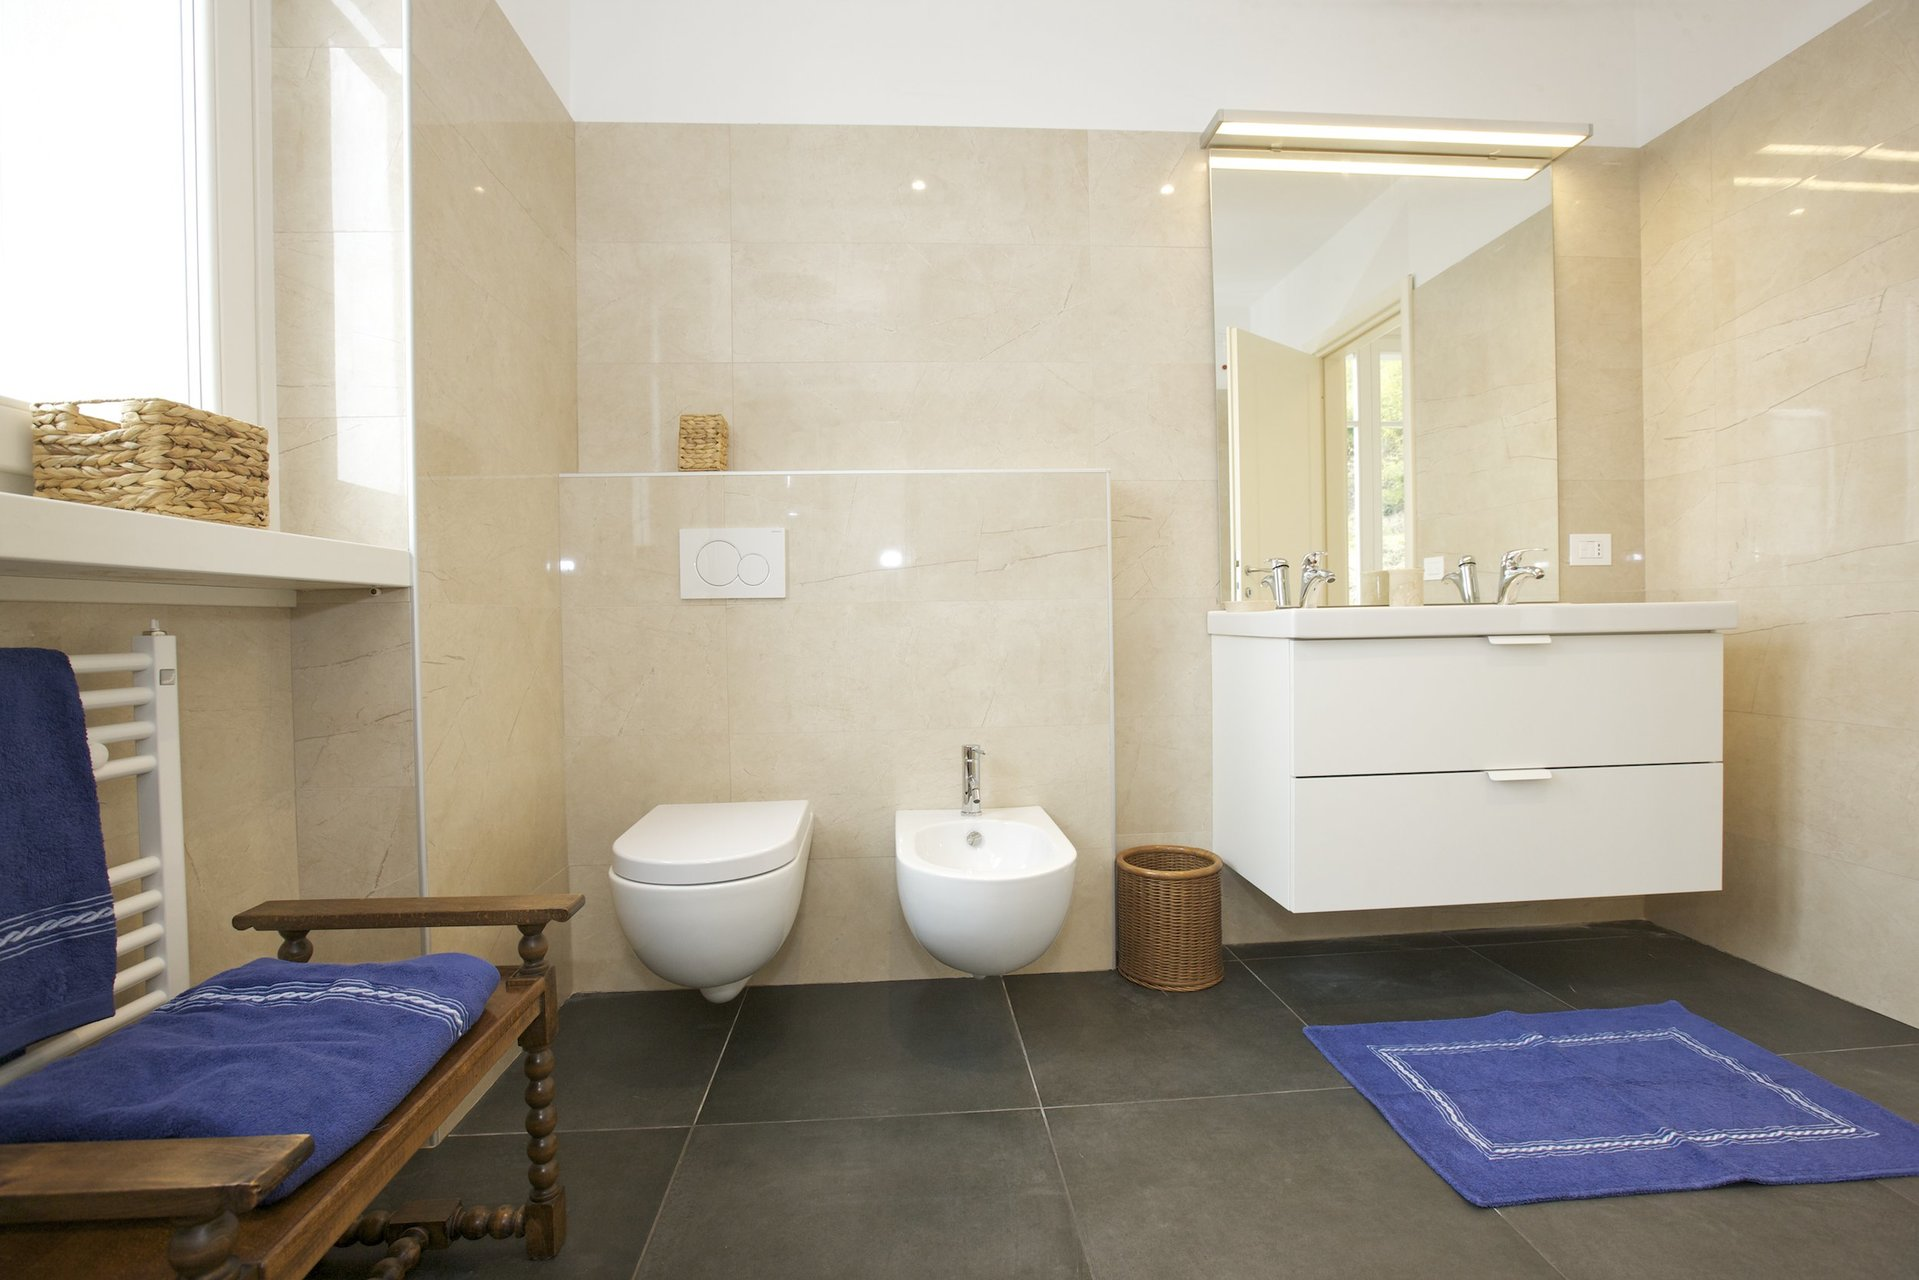 Luxury new villa for sale in Verbania - master bathroom